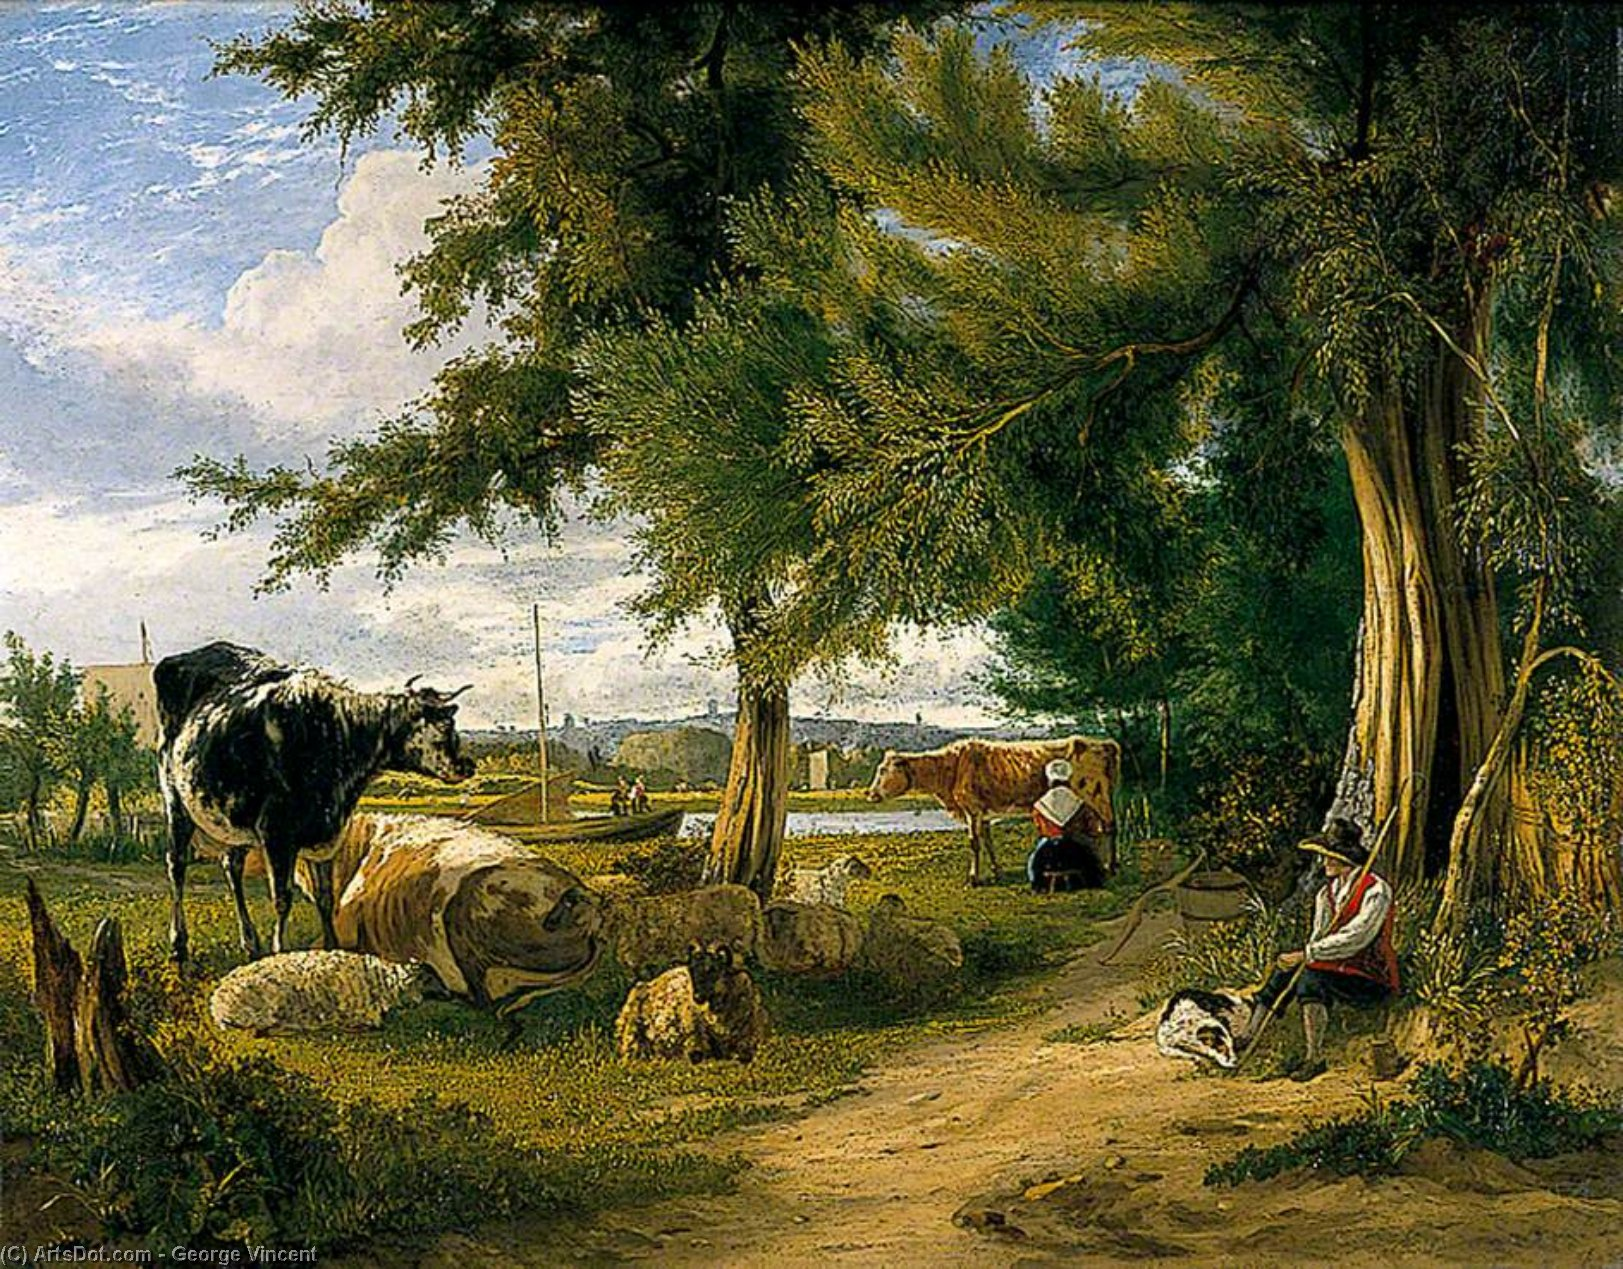 Cena pastoral por George Vincent (1796-1831, United Kingdom)